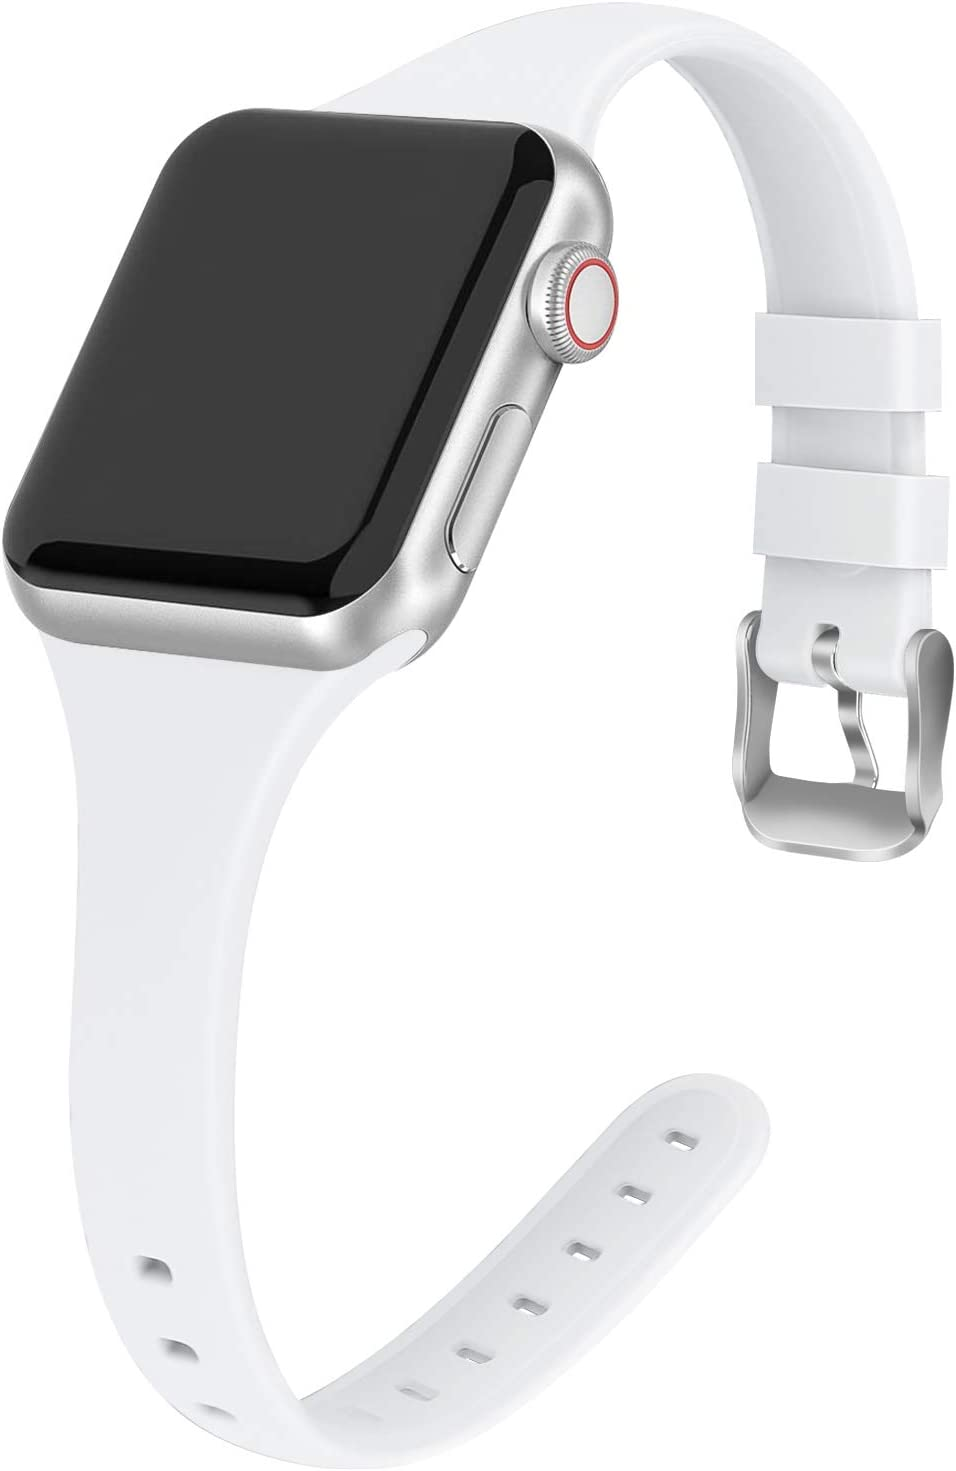 THWALK Sport Band Compatible with Apple Watch 38/40mm 42/44mm Slim Thin Narrow Silicone Replacement Strap with Stainless Steel Buckle Compatible for iWatch SE Series 6/5/4/3/2/1(White, 38/40mm)